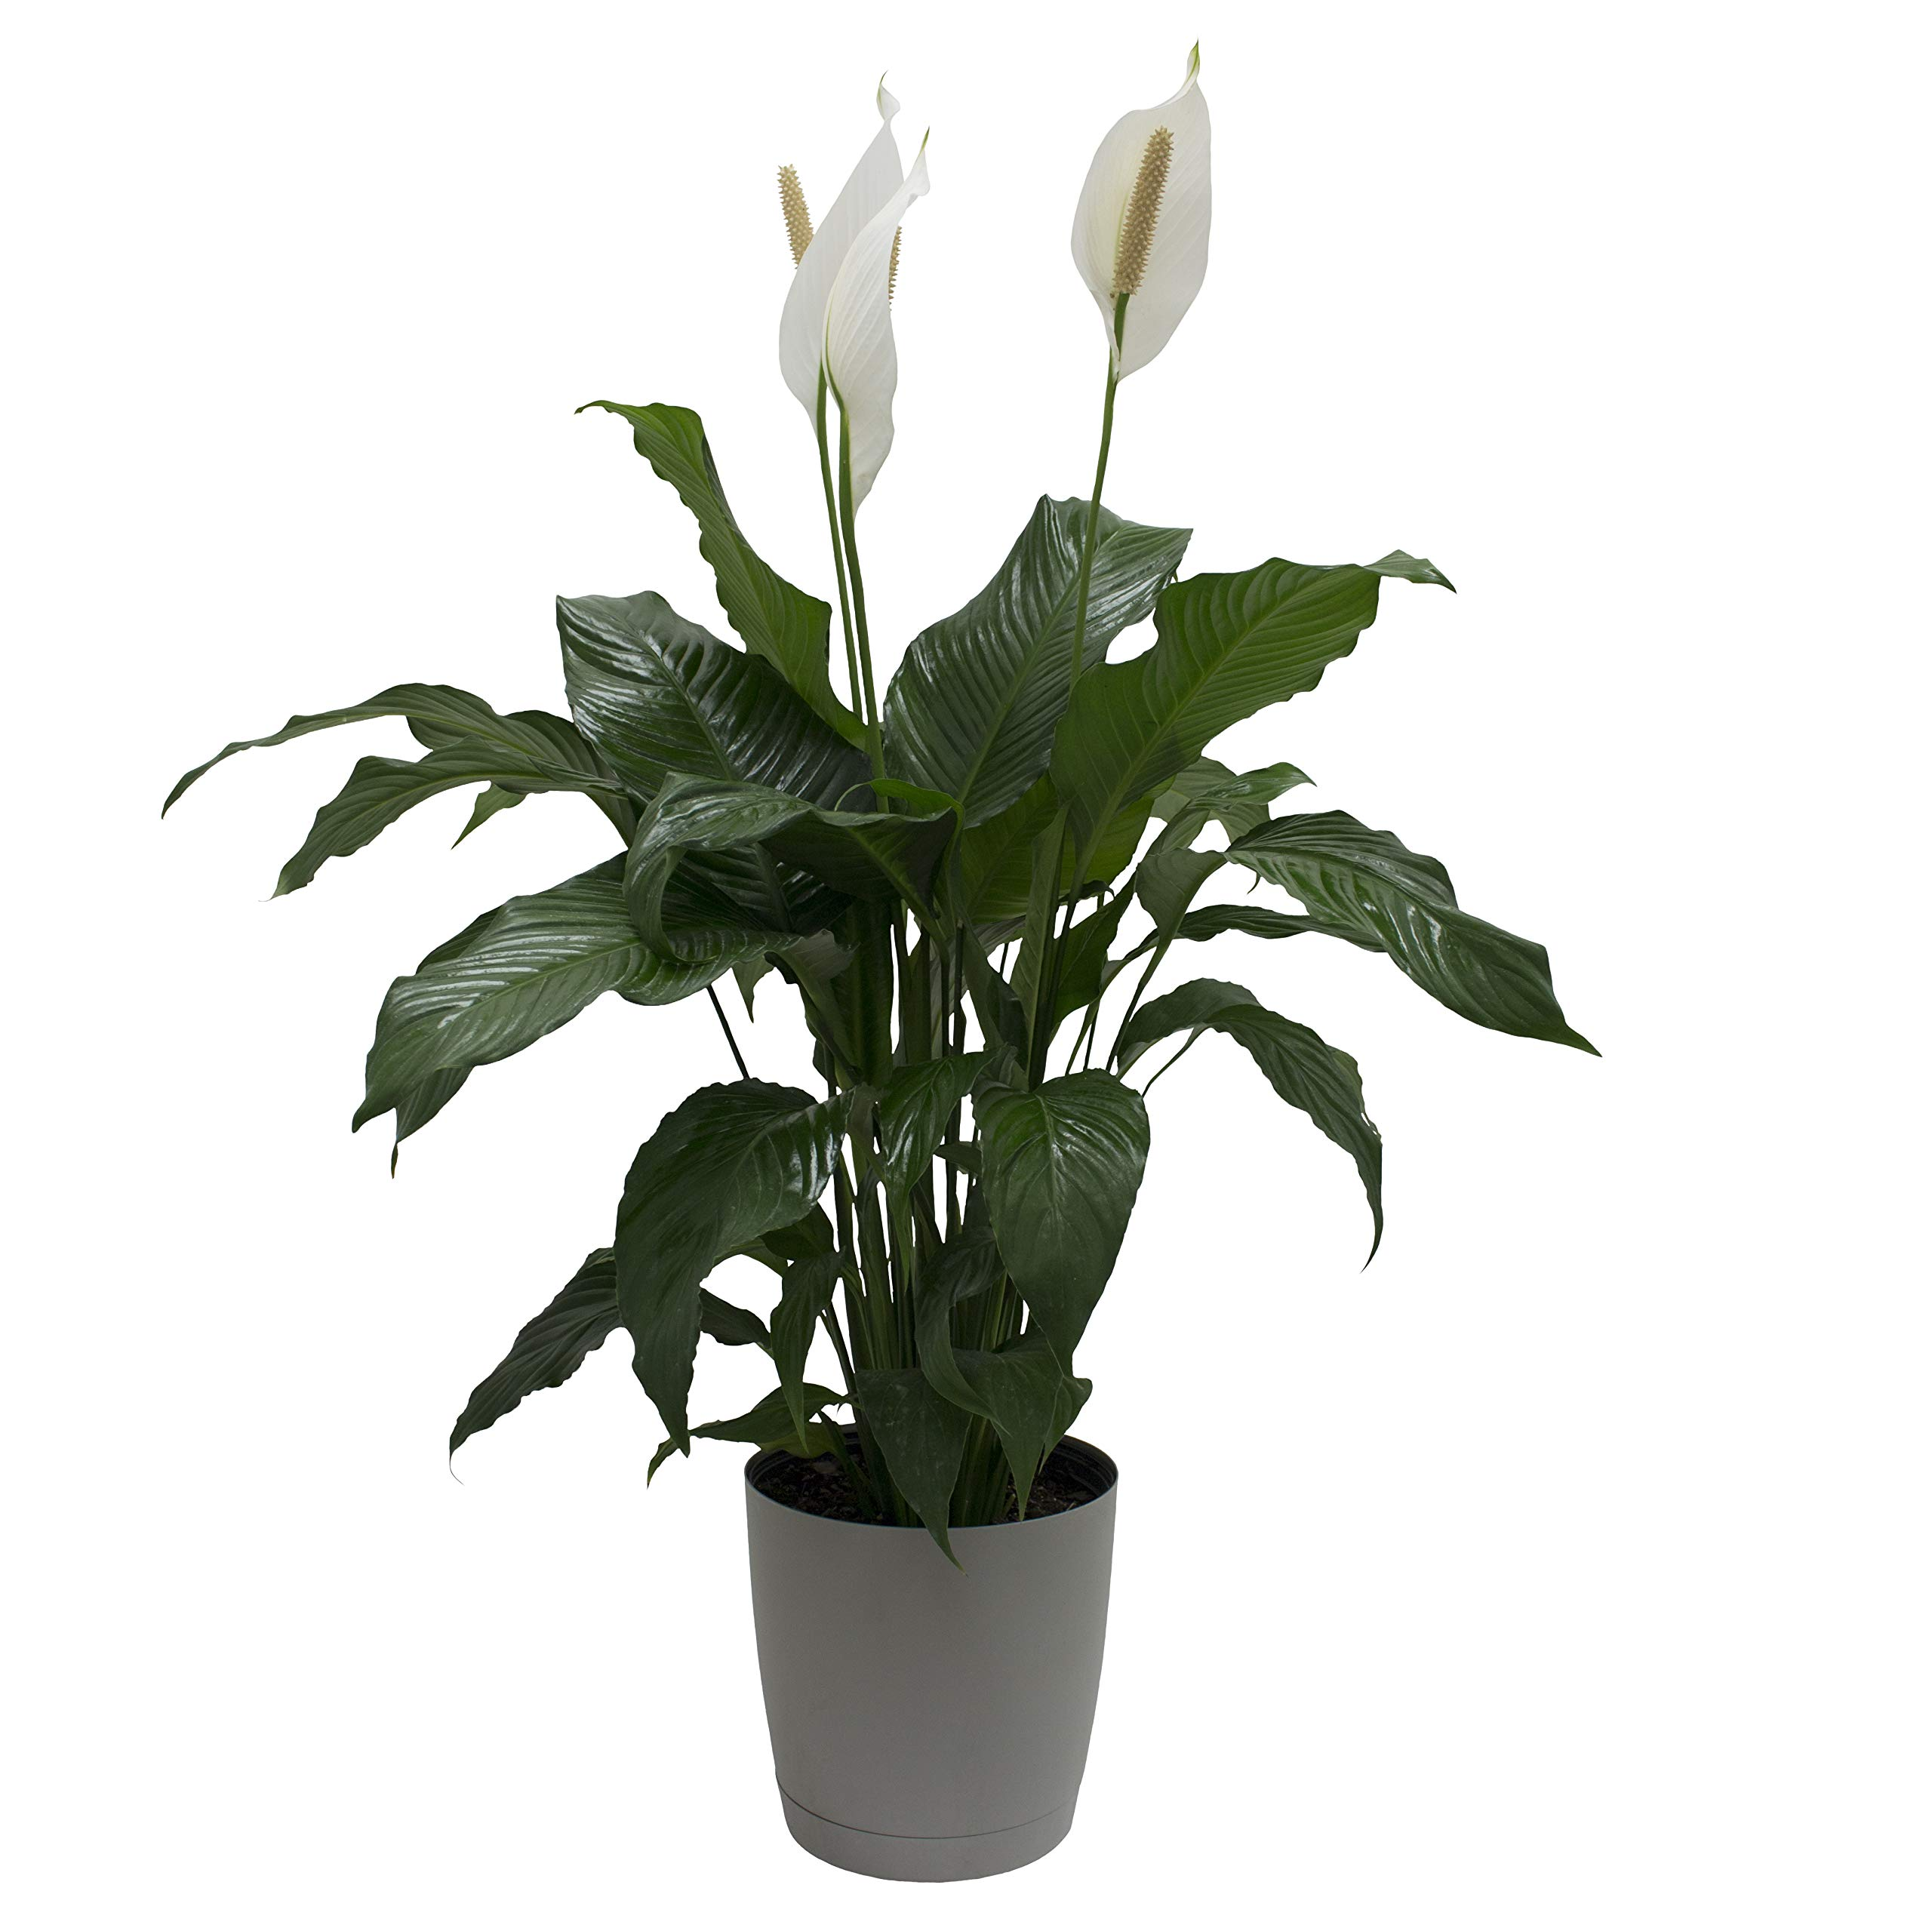 Costa Farms Peace lily, Spathiphyllum, Live Indoor Plant, 3-Feet Tall, Ships in Décor Planter, Fresh From Our Farm, Excellent Gift or Home Décor by Costa Farms